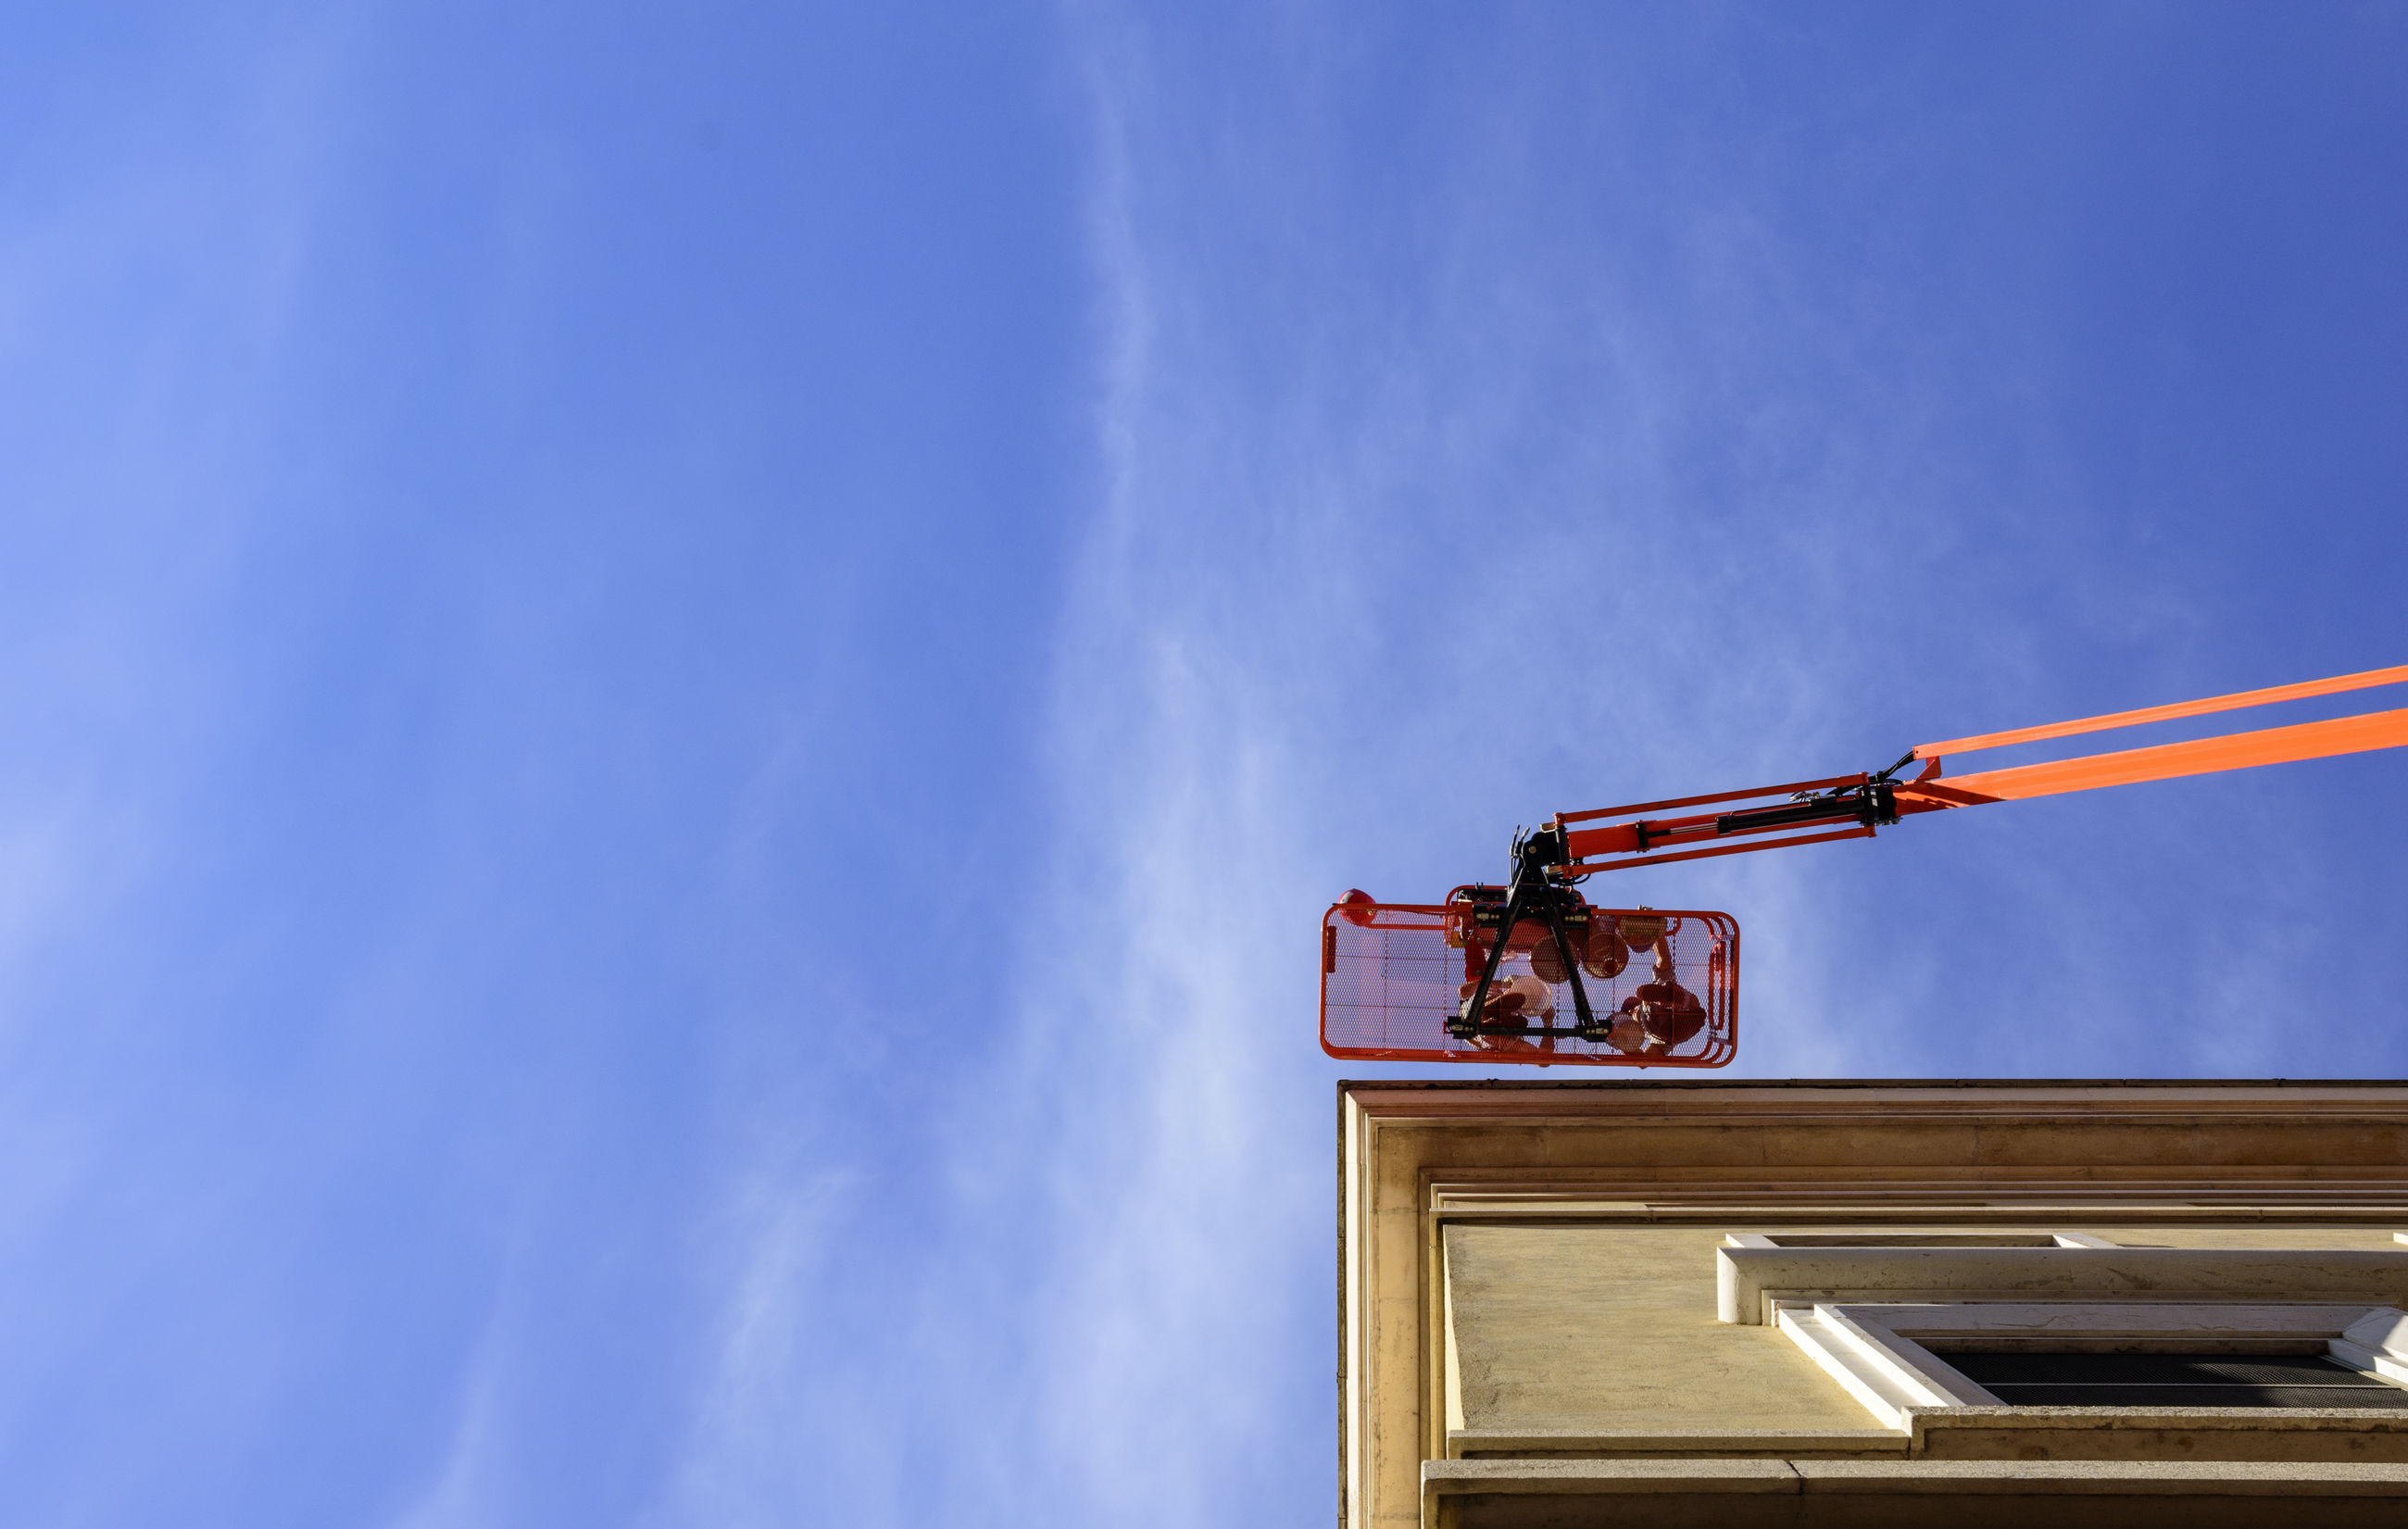 Low angle view of workers on hydraulic platform by building against blue sky